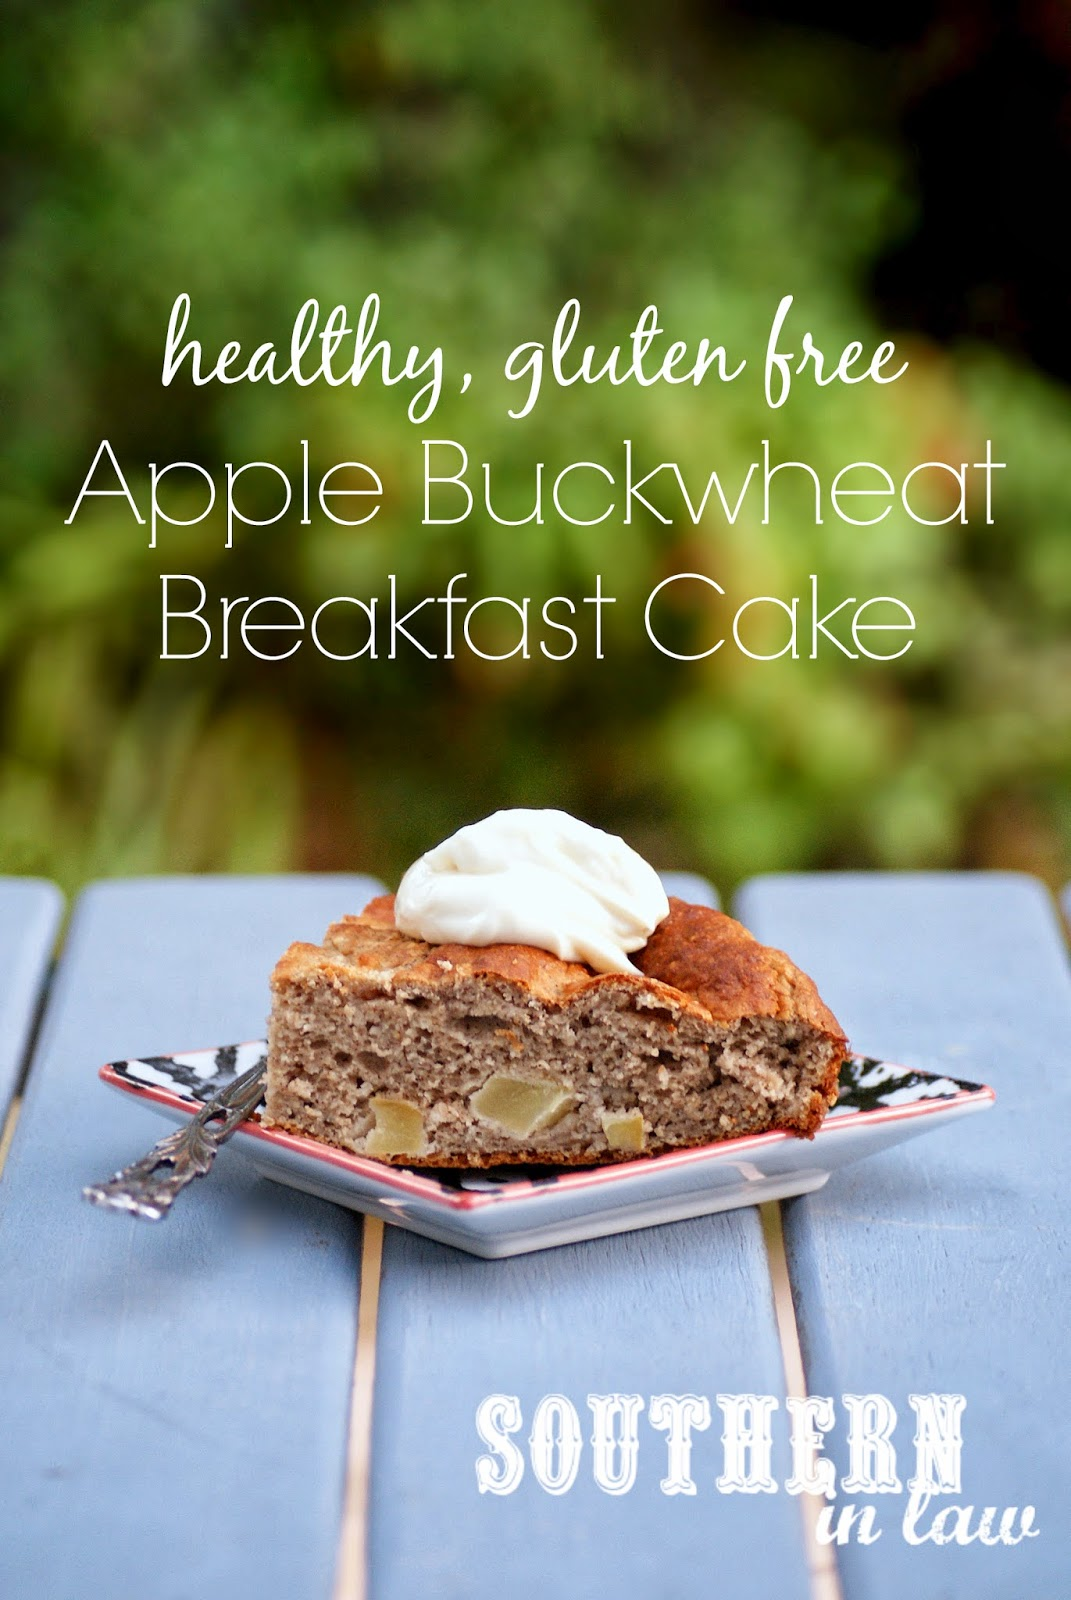 Southern In Law Recipe Apple Buckwheat Breakfast Cake